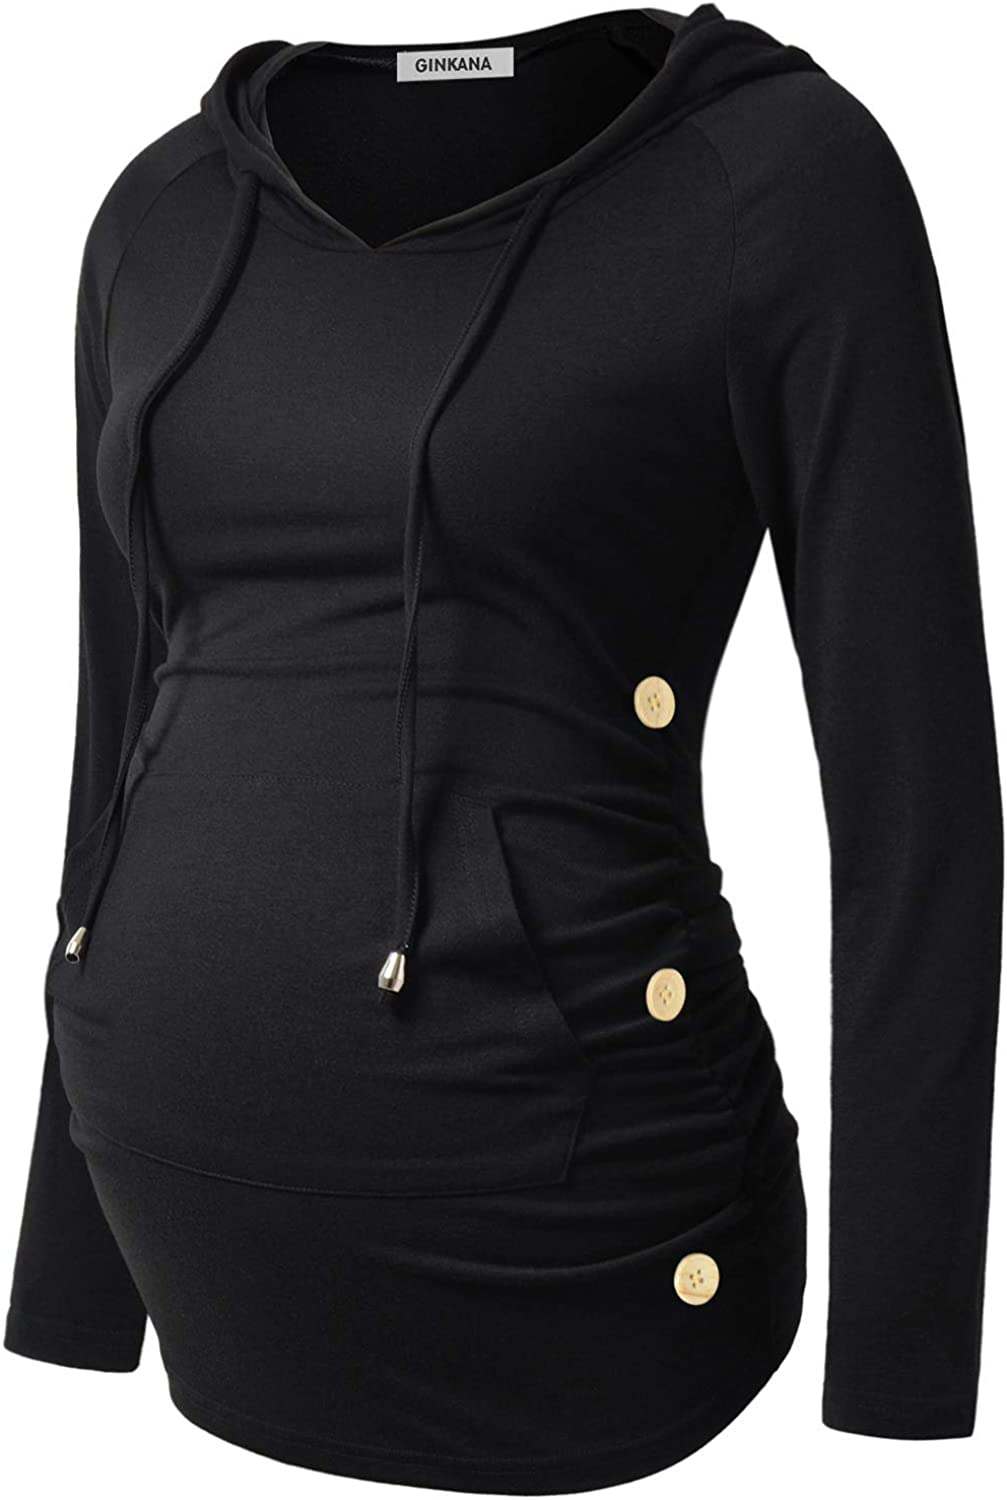 GINKANA Maternity All items free shipping Indefinitely Hoodie Long Sleeves Button Casual Shirts Side